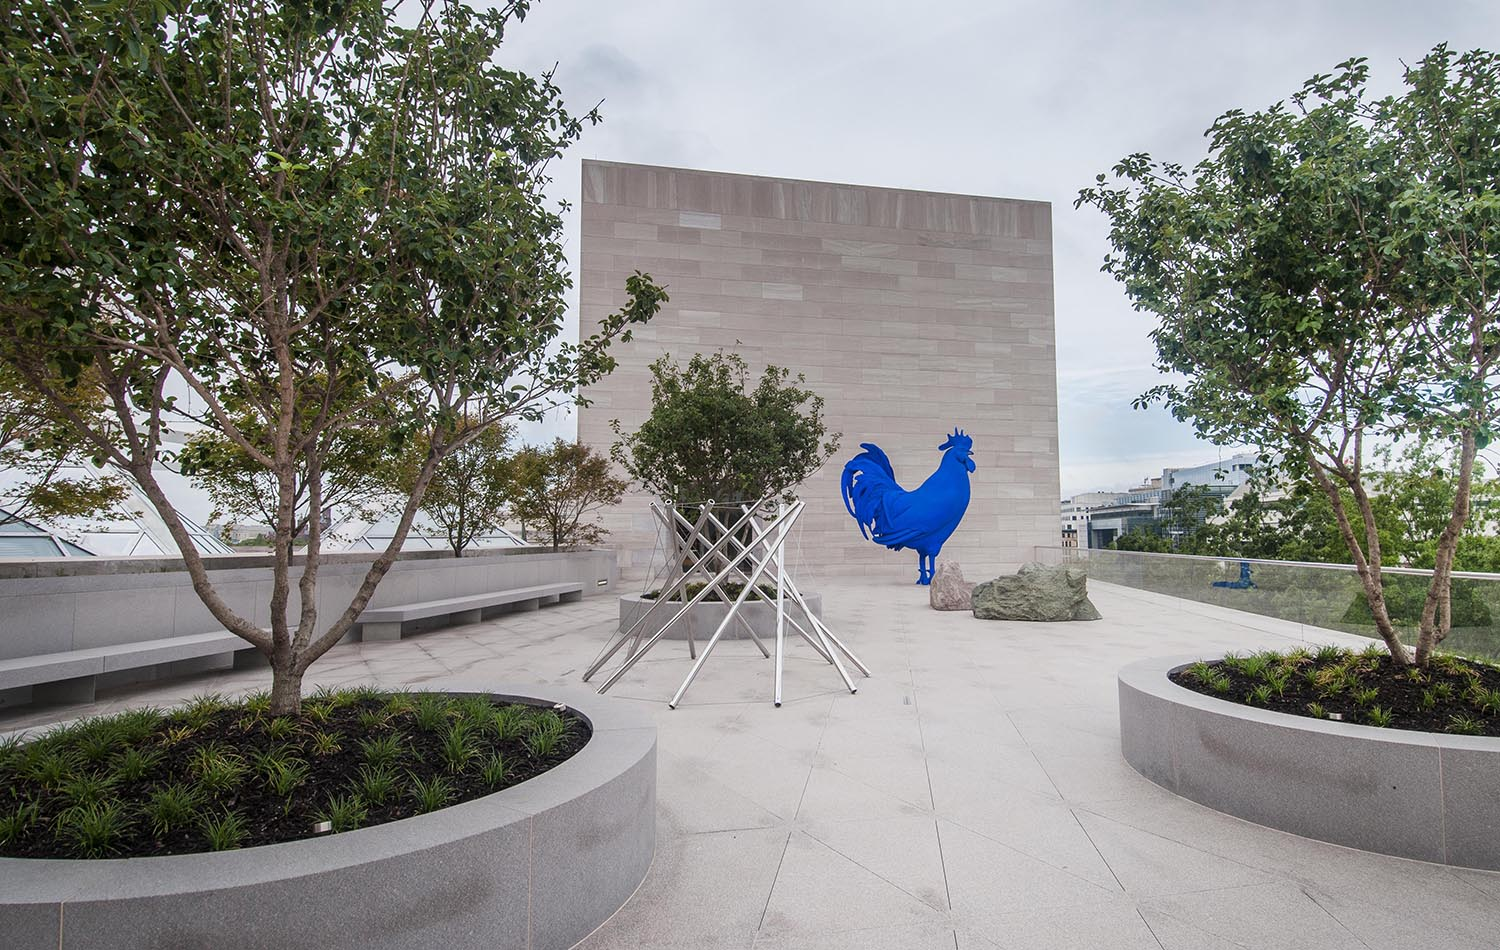 The new Roof Terrace of the East Building at the National Gallery of Art with a view of Nam June Paik's Ugly Buddha and Ugly TV (1991–1996), Kenneth Snelson's V-X (1968), Scott Burton's two Rock Settees (1988), and Katharina Fritsch's Hahn/Cock (2013), on longterm loan from Glenstone Museum (Image: Photo by Rob Shelley, courtesy National Gallery of Art, Washington, DC)